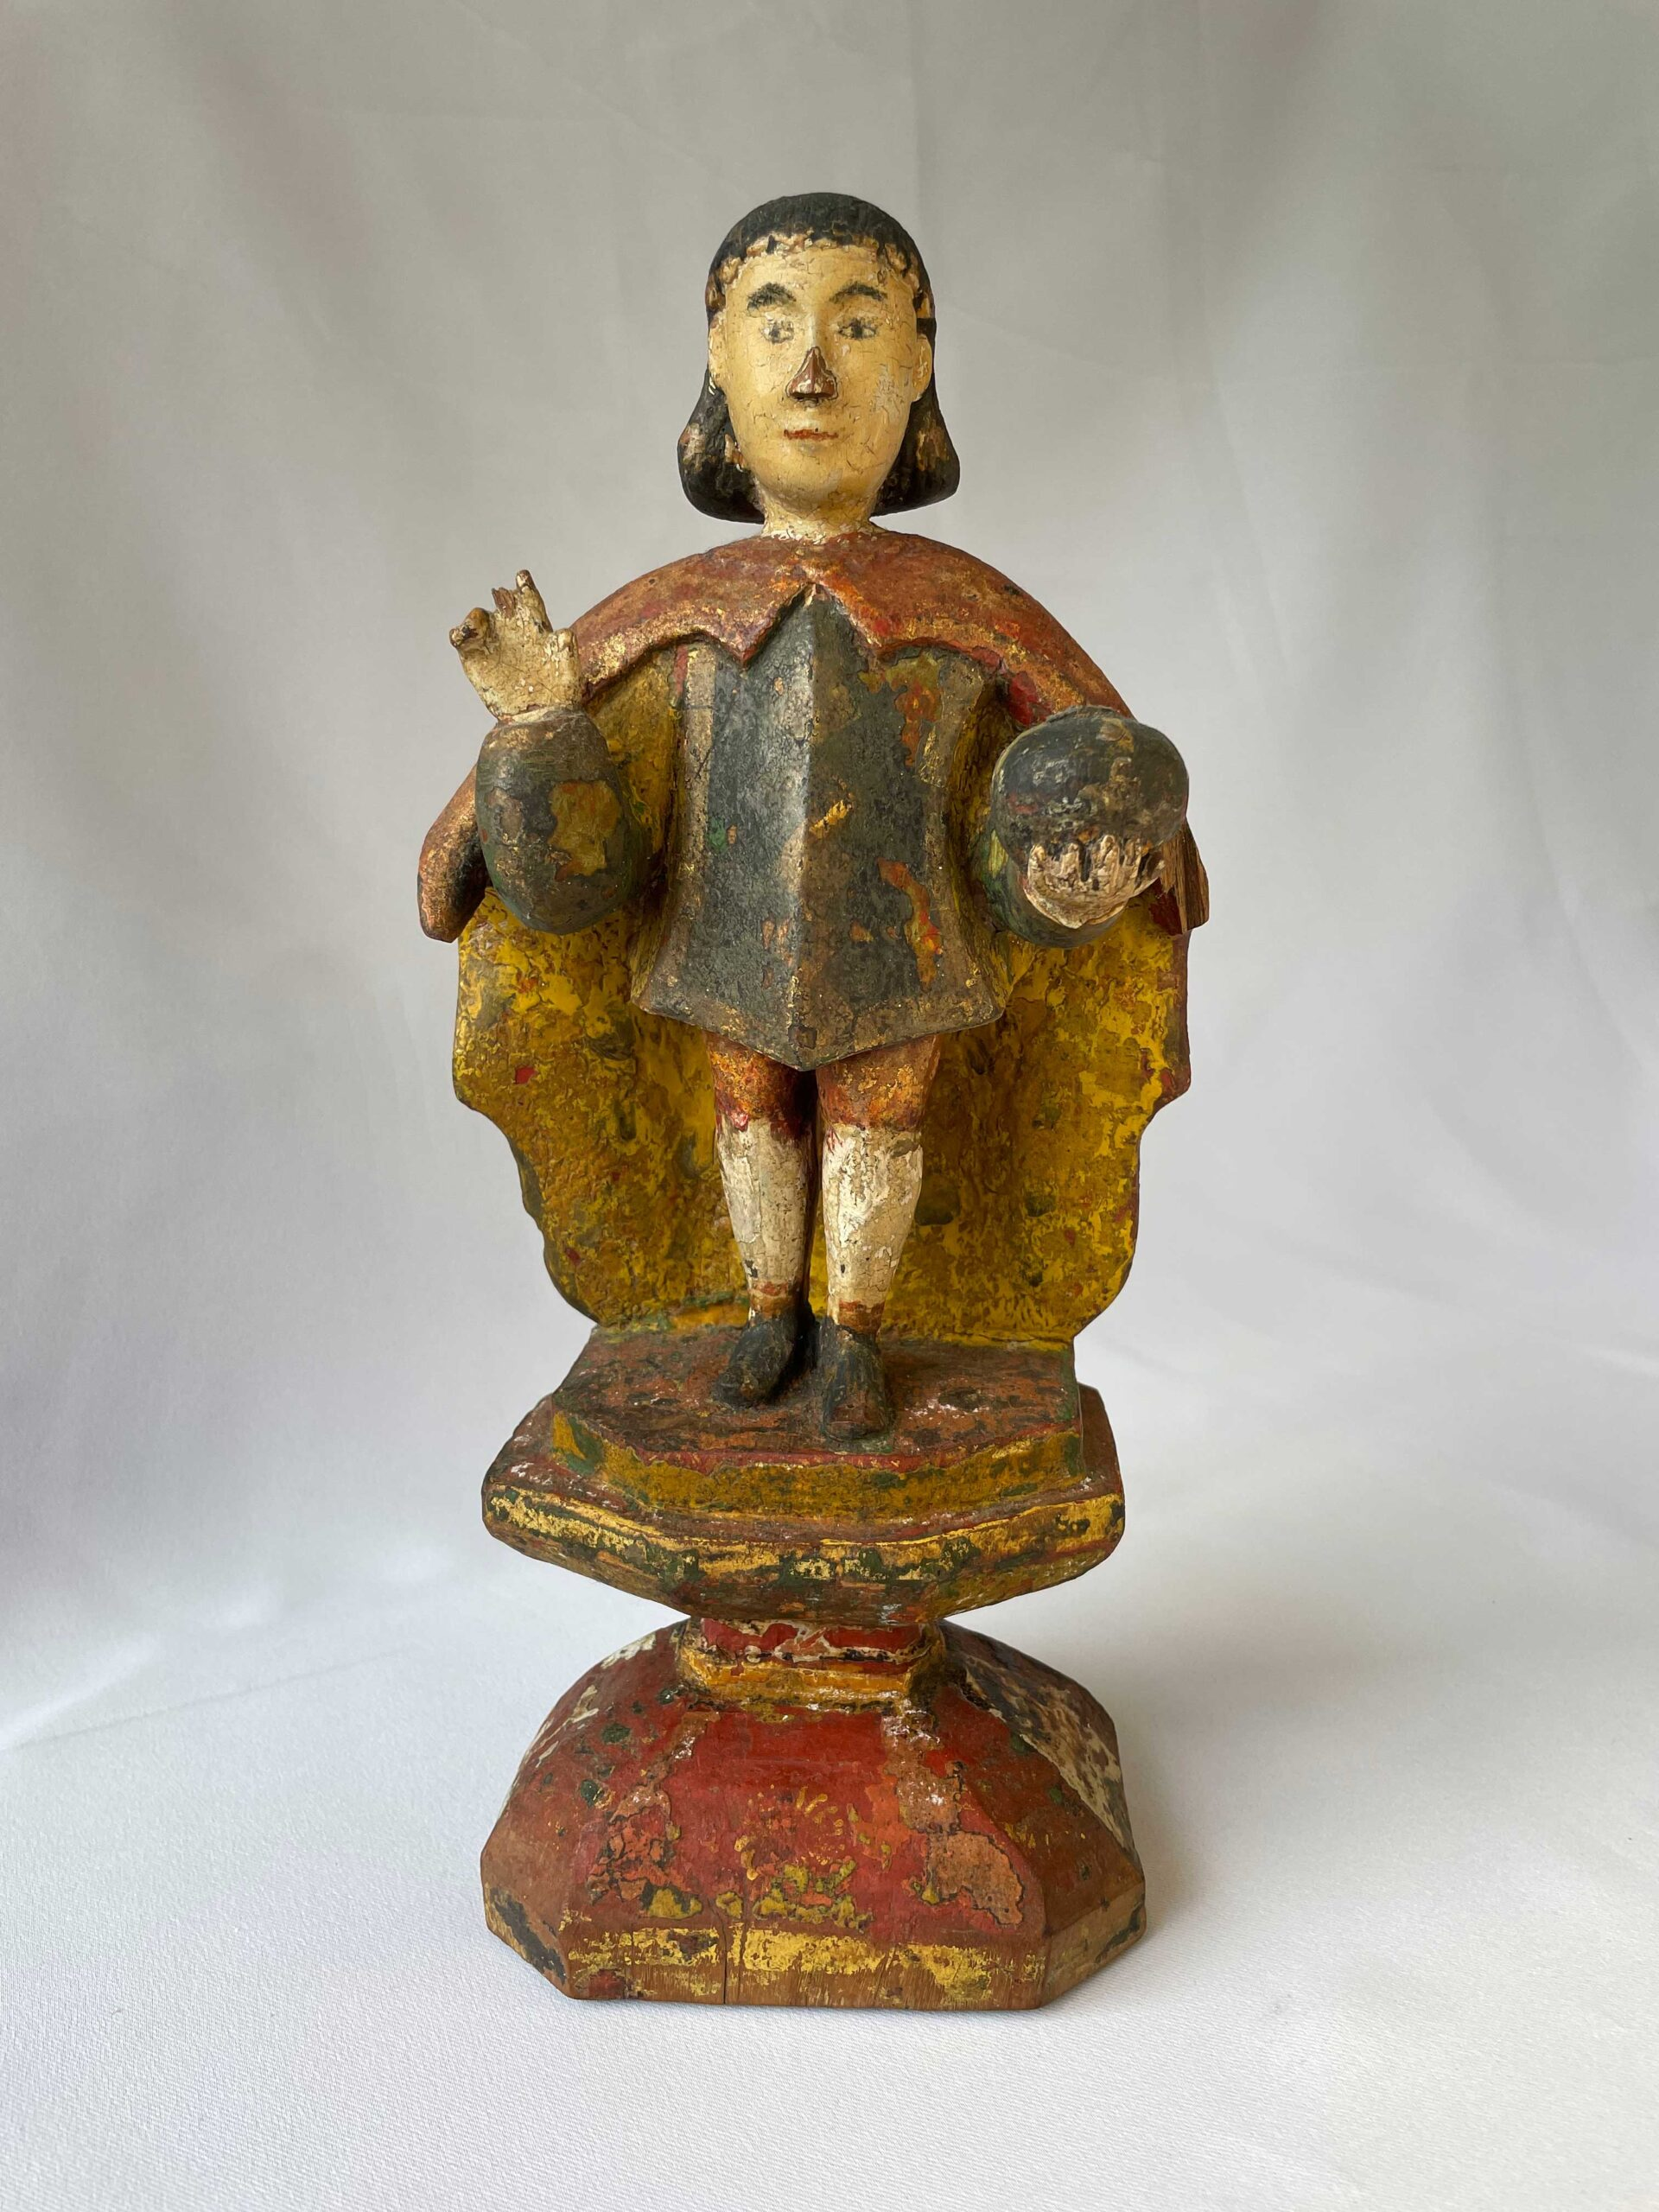 """A folk rendition of the Santo Niño of Cebu from Bohol Island. Santos from Bohol are excellent study pieces for colonial polychromy. They would paint their santos in layers of paints in extravagant colors sourced from plants, insects, mollusks, minerals and other natural pigments until synthetic pigments became available by late 19th to early 20th century. In Fernando Zobel's seminal essay """"Philippine Colonial Sculpture"""" (1958), he noted that one of the distinct characteristics of Philippine colonial santos that distinguishes them from European and South American statuaries is our preference for colours, which he described as """"wild,"""" """"blindingly strong,"""" and """"strikingly original.""""   (From the Emil Marañon III collection)"""